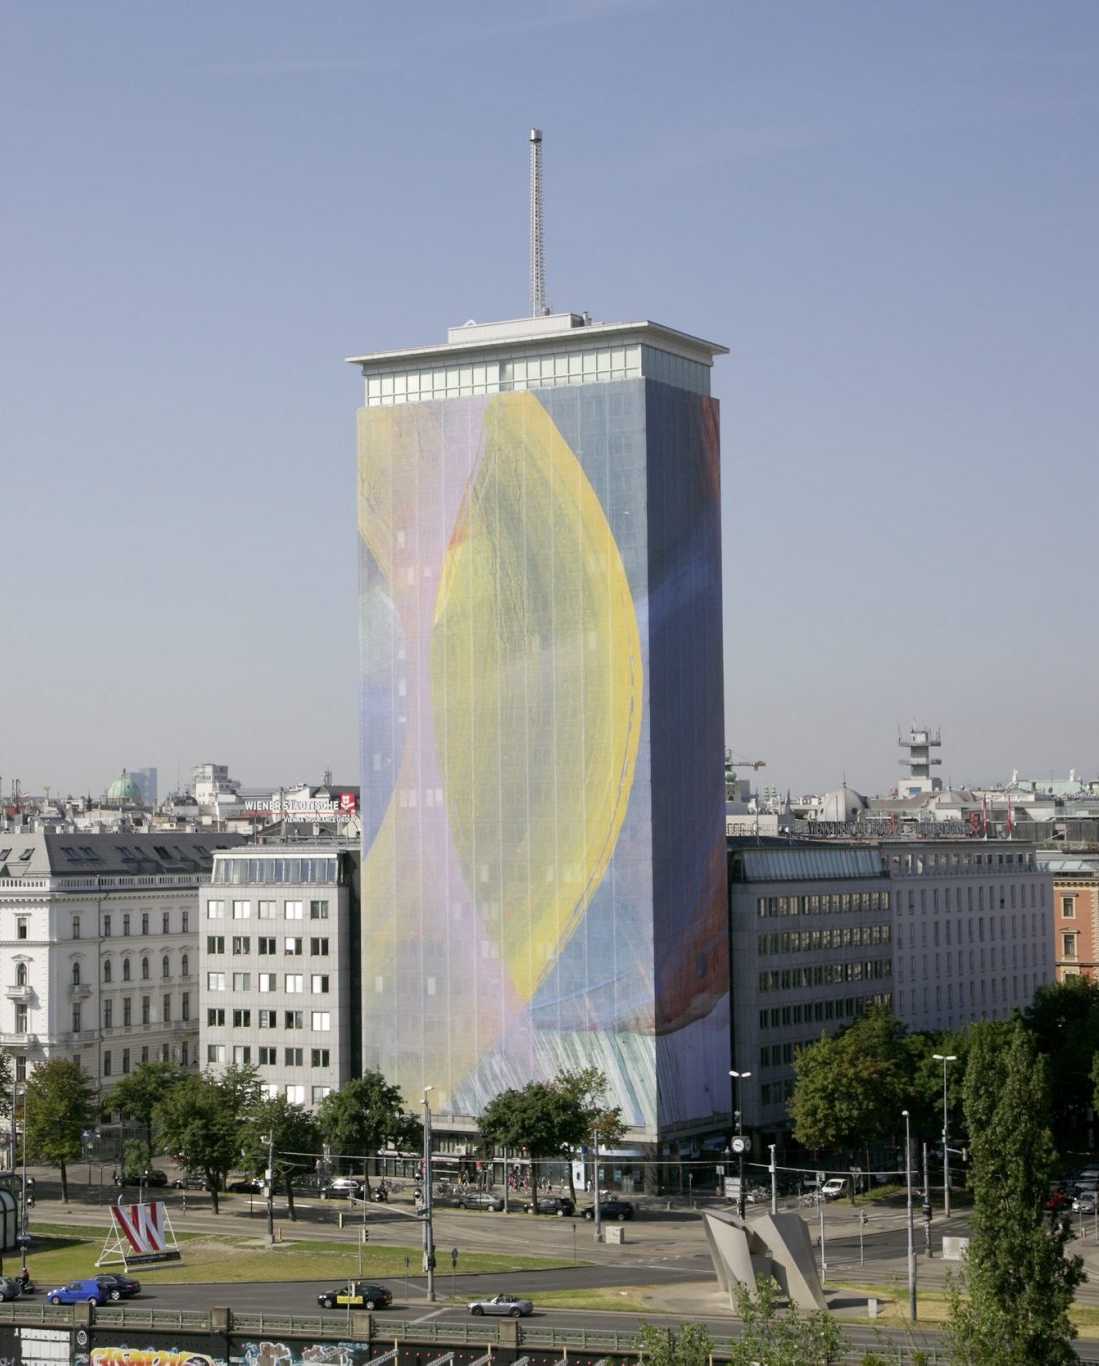 Arnulf Rainer's artistic wrapping of the Ringturm 2014: